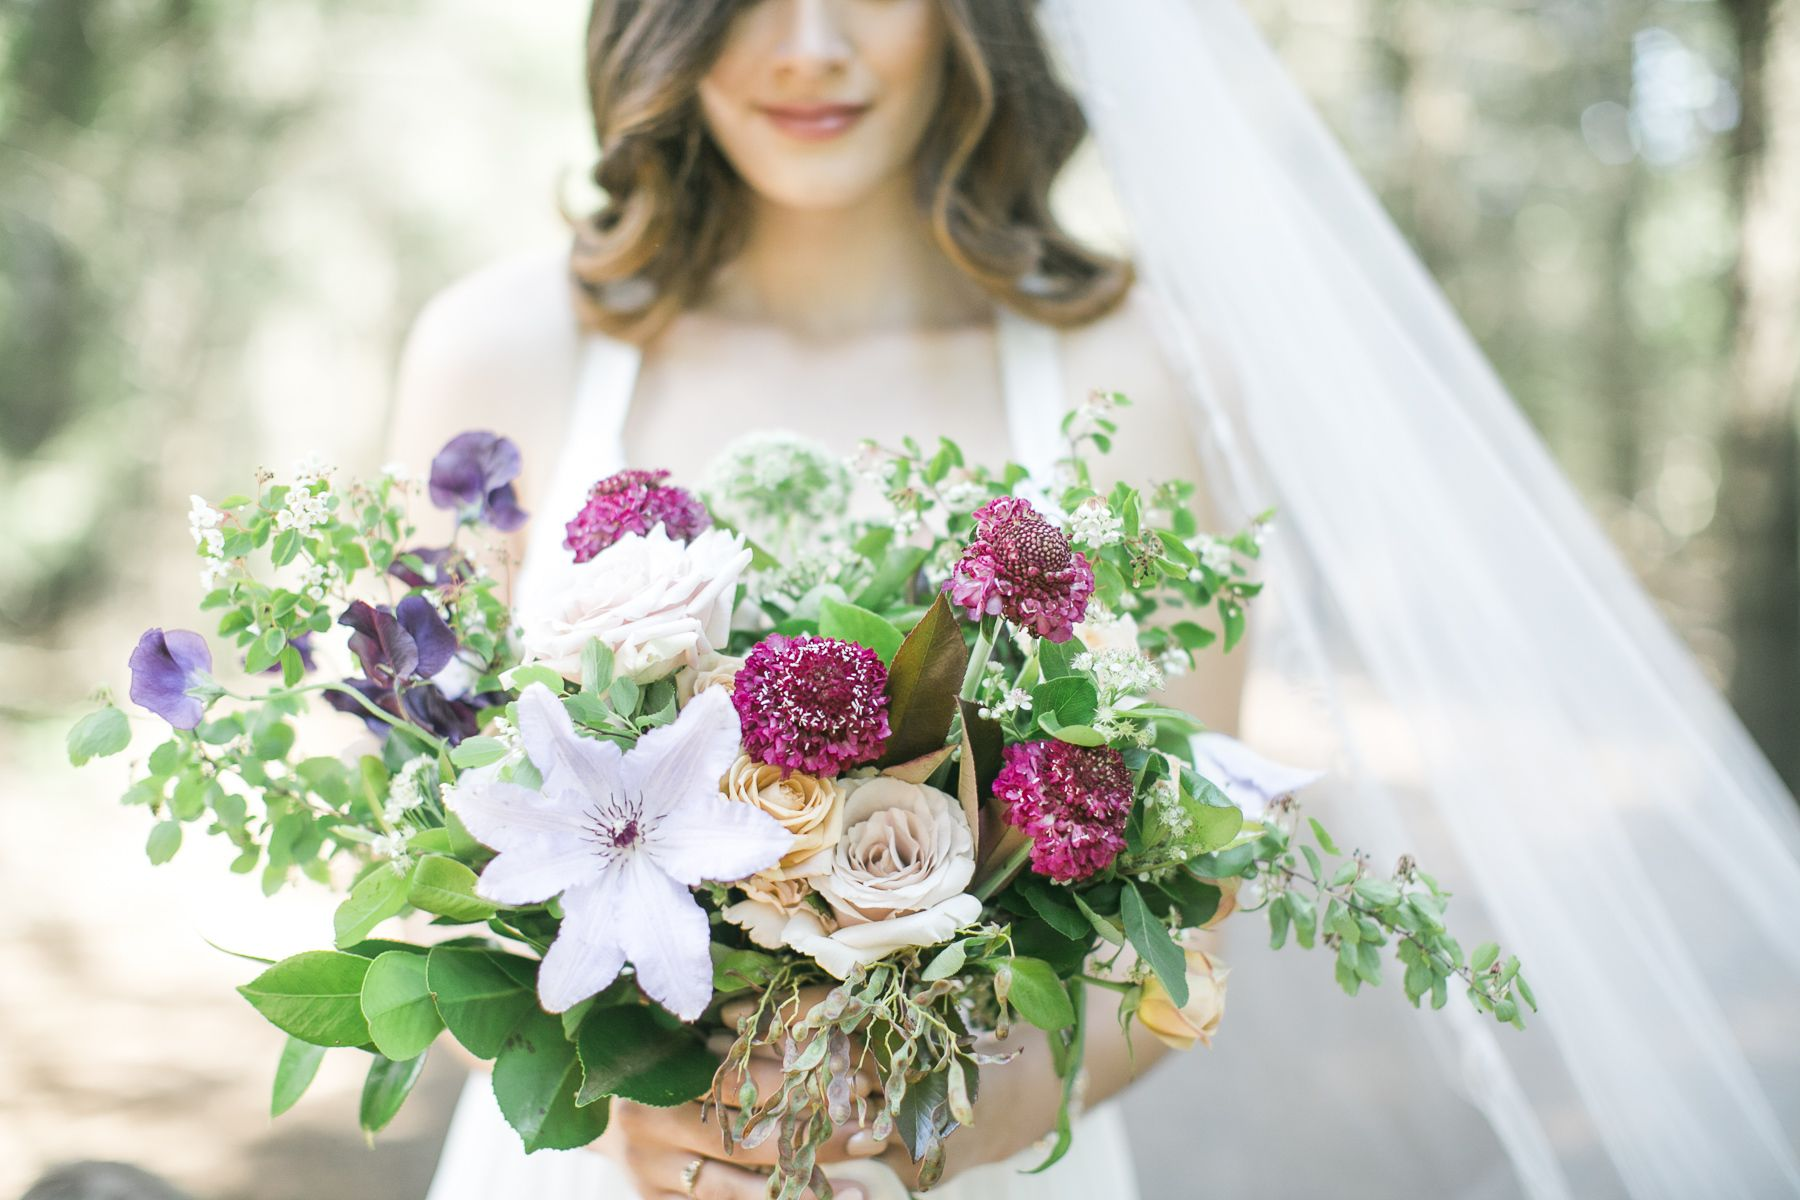 Whimsical inspiration in the middle of a forest forest wedding